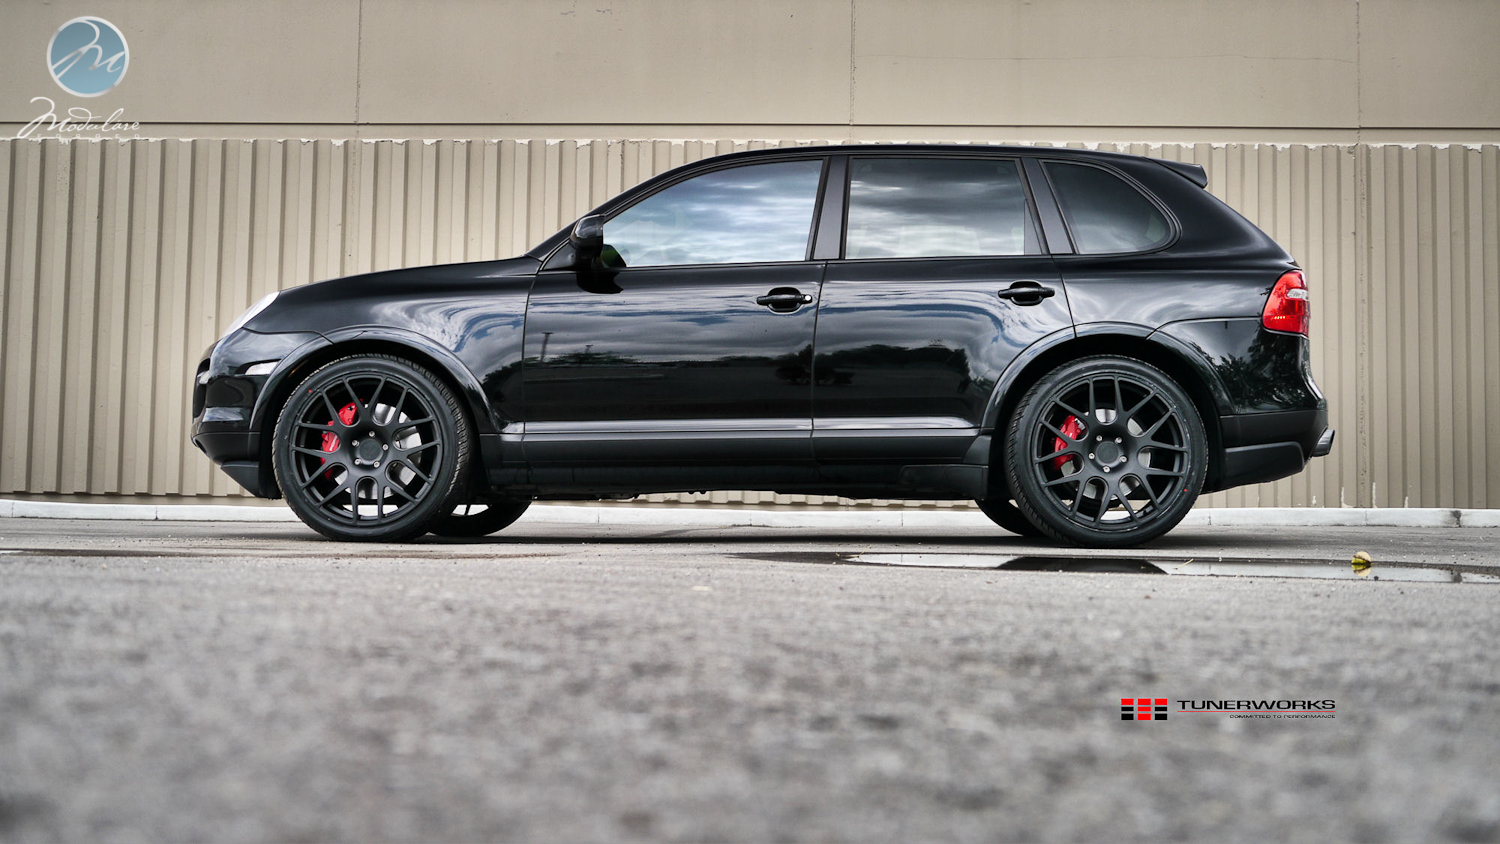 porsche cayenne lowered with Showthread on Techart Porsche Cayenne GrandGT Bodykit 2017 13 Tuning furthermore 2018 Porsche Cayenne Global Details 884755 likewise 498 2013 991 Carrera S Hre P40sc Wheels Brembo Brakes And Techart Aero further Onyx Bentley Continental Gt Platinum Gto additionally 0402st Djm Lowering Kit Dodge Ram.